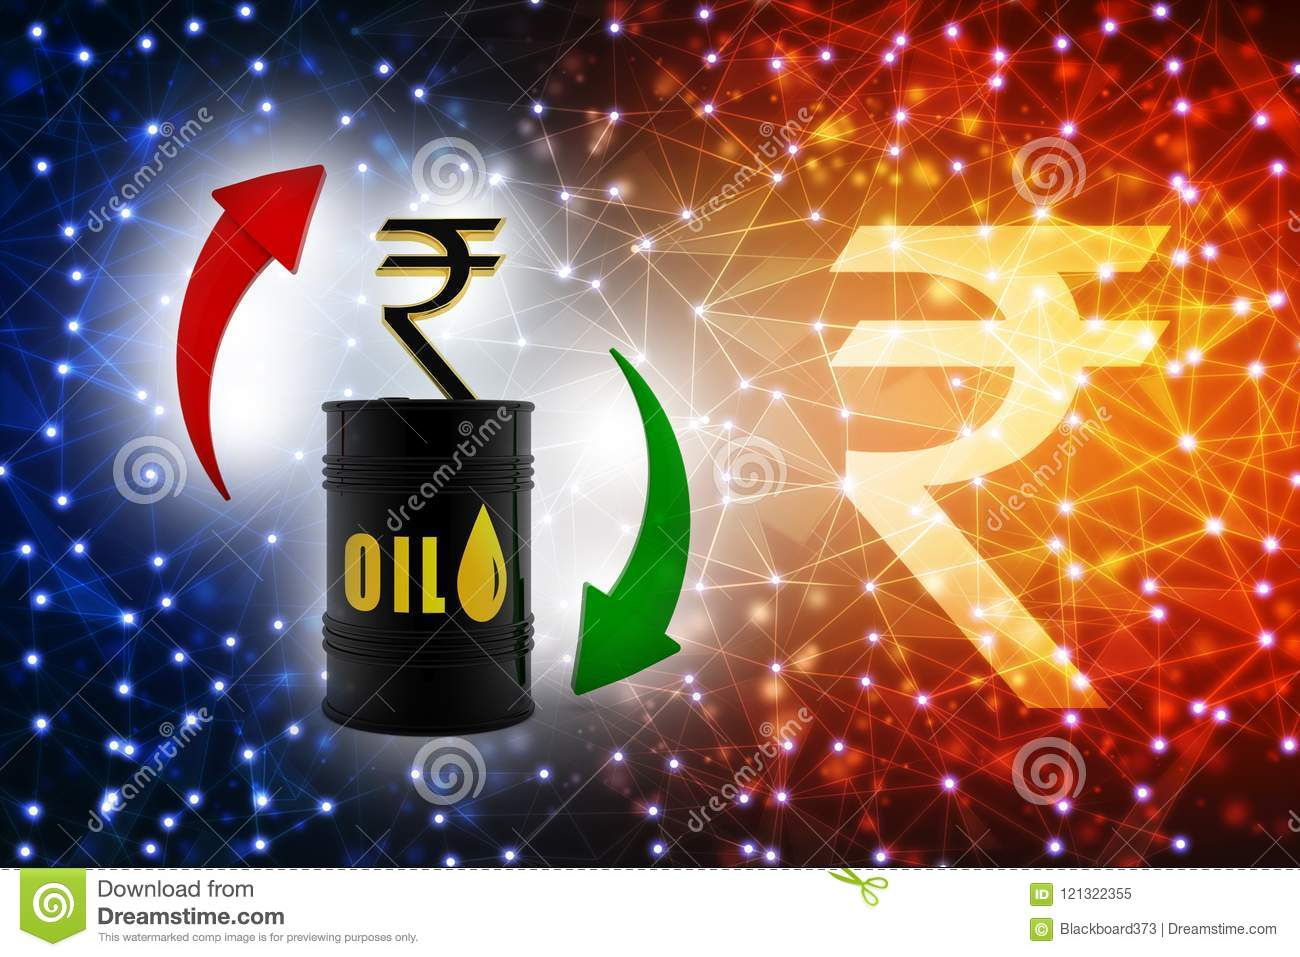 Oil Industry Concept With Barrel And Indian Rupee Oil Price Market